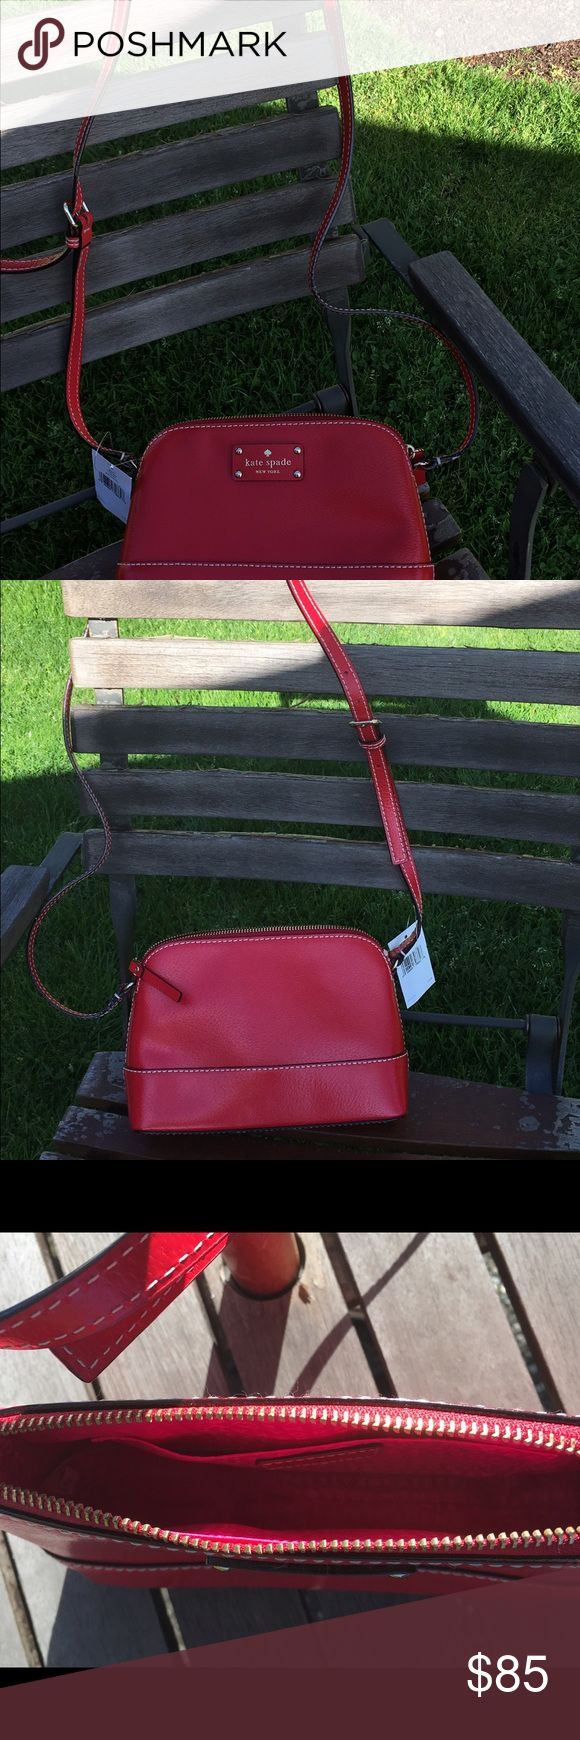 """Kate Spade Red shoulder bag Kate Spade red shoulder bag with tags. Measures 9"""" wide and 6 1/2"""" height exterior.  The interior soft opening measures 7 1/2"""" and 2 1/2"""" opening. Interior has magenta liner with one pocket. kate spade Bags Crossbody Bags"""